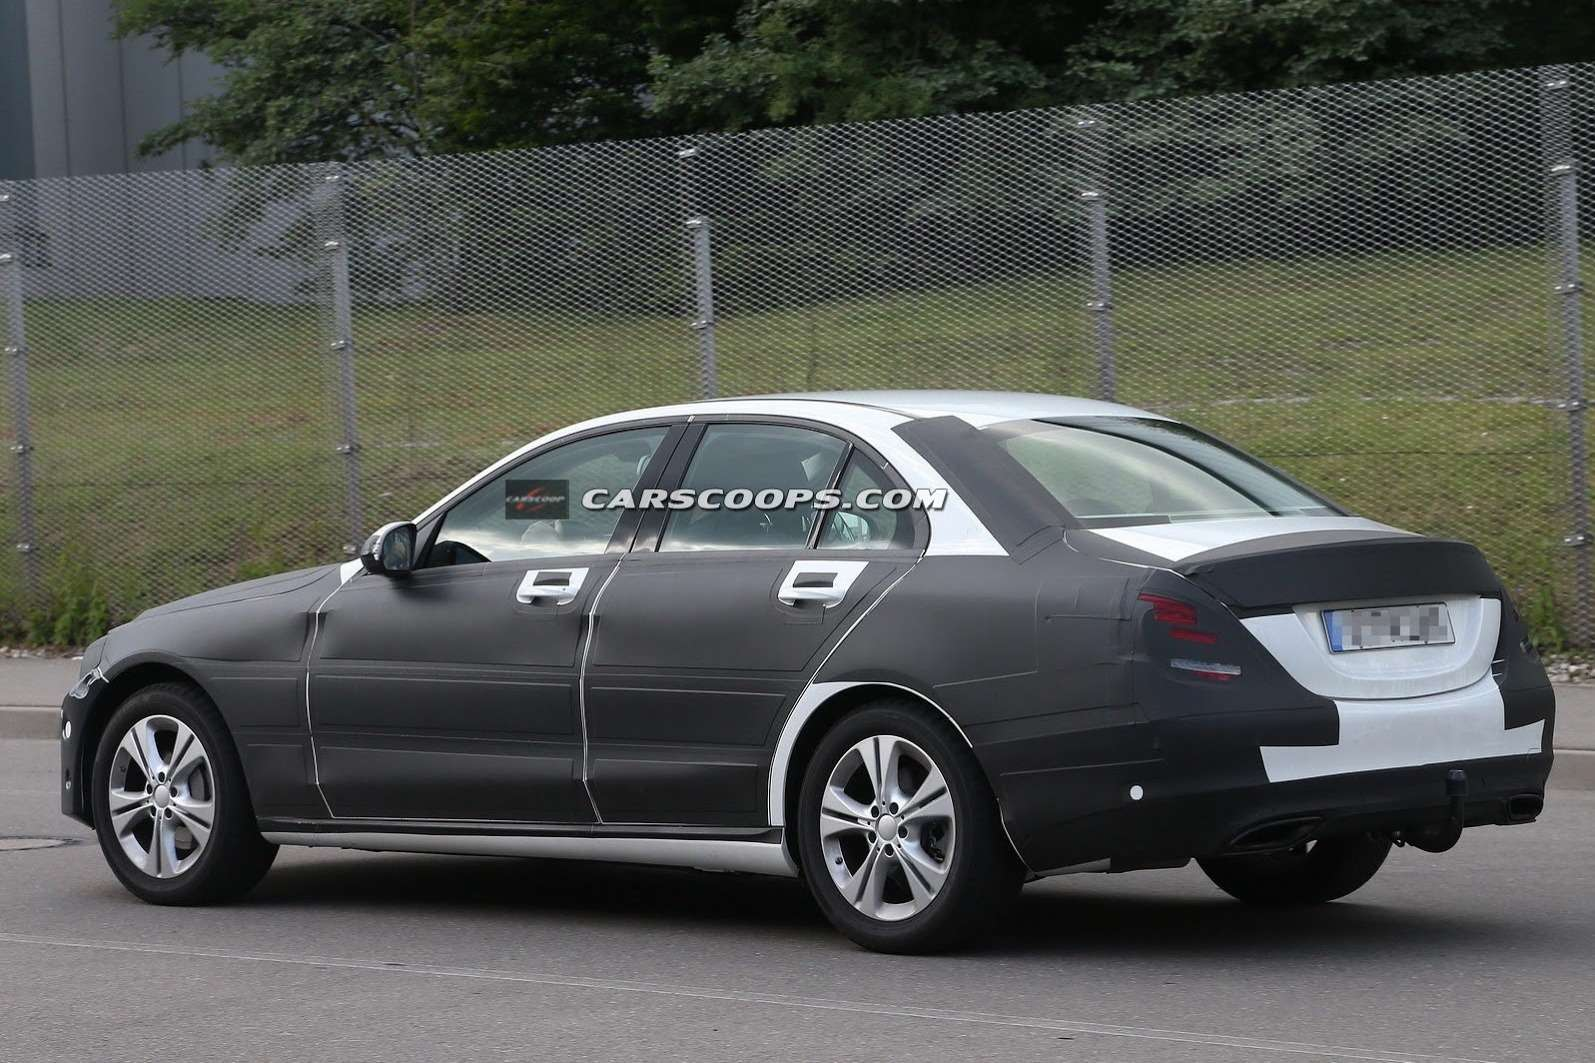 2015 Mercedes C Class Undisguised Carscoops7[3] no copyright